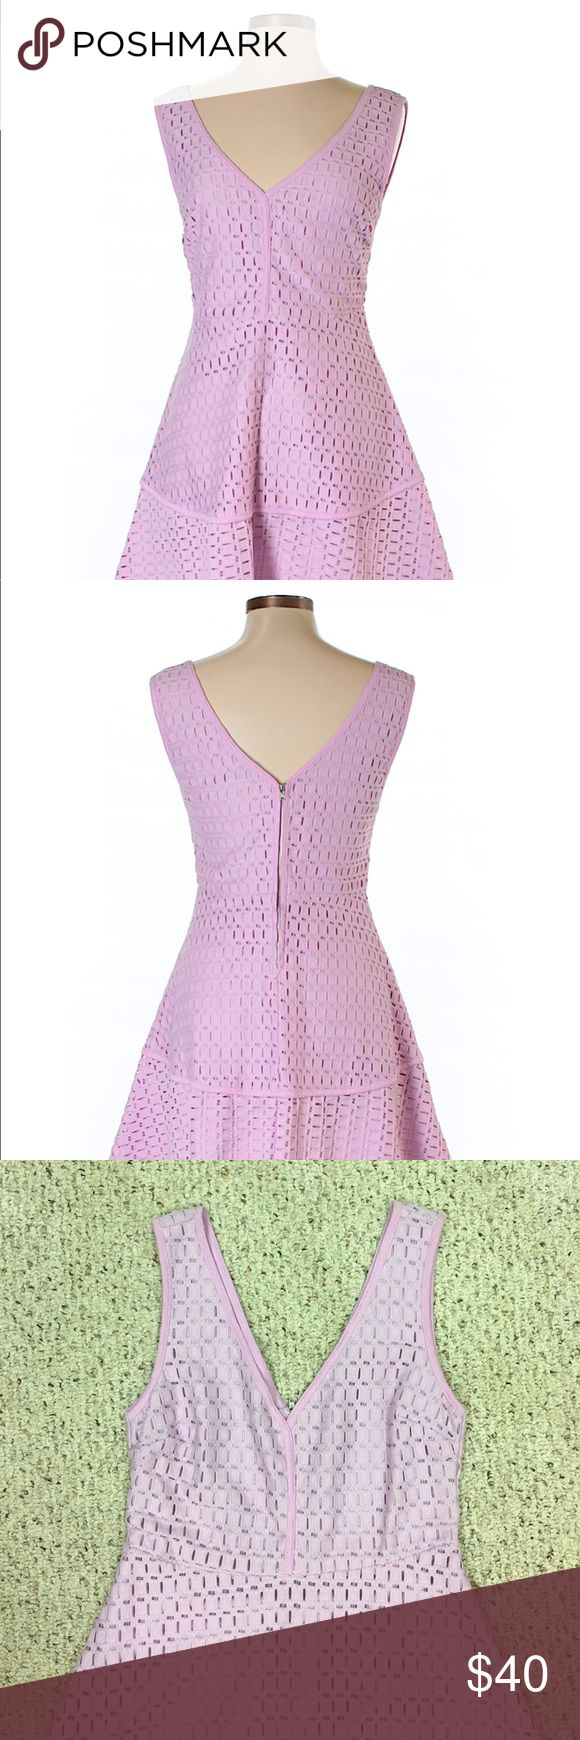 NWOT Cupcakes and Cashmere Dress beautiful lavender colored dress! Bought online, just too big for me! You can easily dress this up with heels or dress it down with sandals! 82% nylon, 18% cotton. Fits size 8 or 10! cupcakes and cashmere Dresses Midi